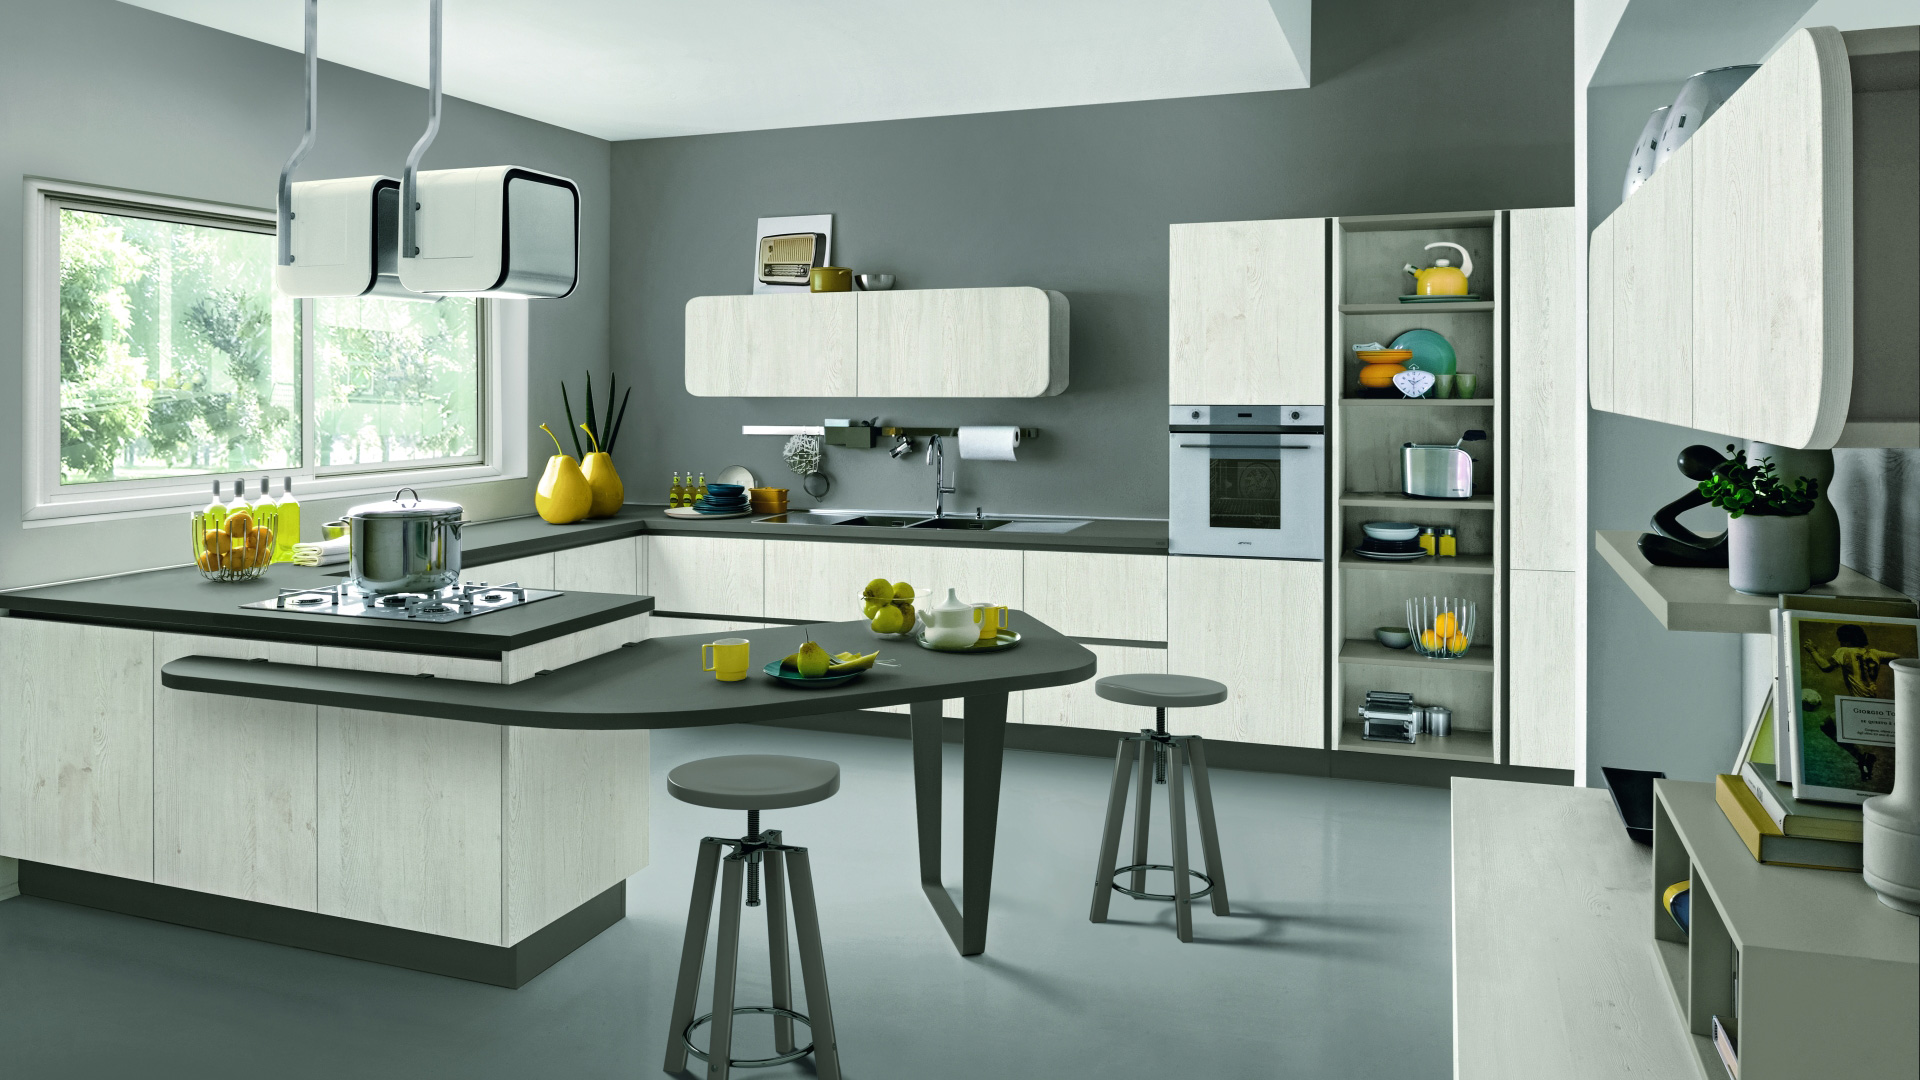 Lube cucine moderne immagina shop online su grancasa for Cucine shop on line